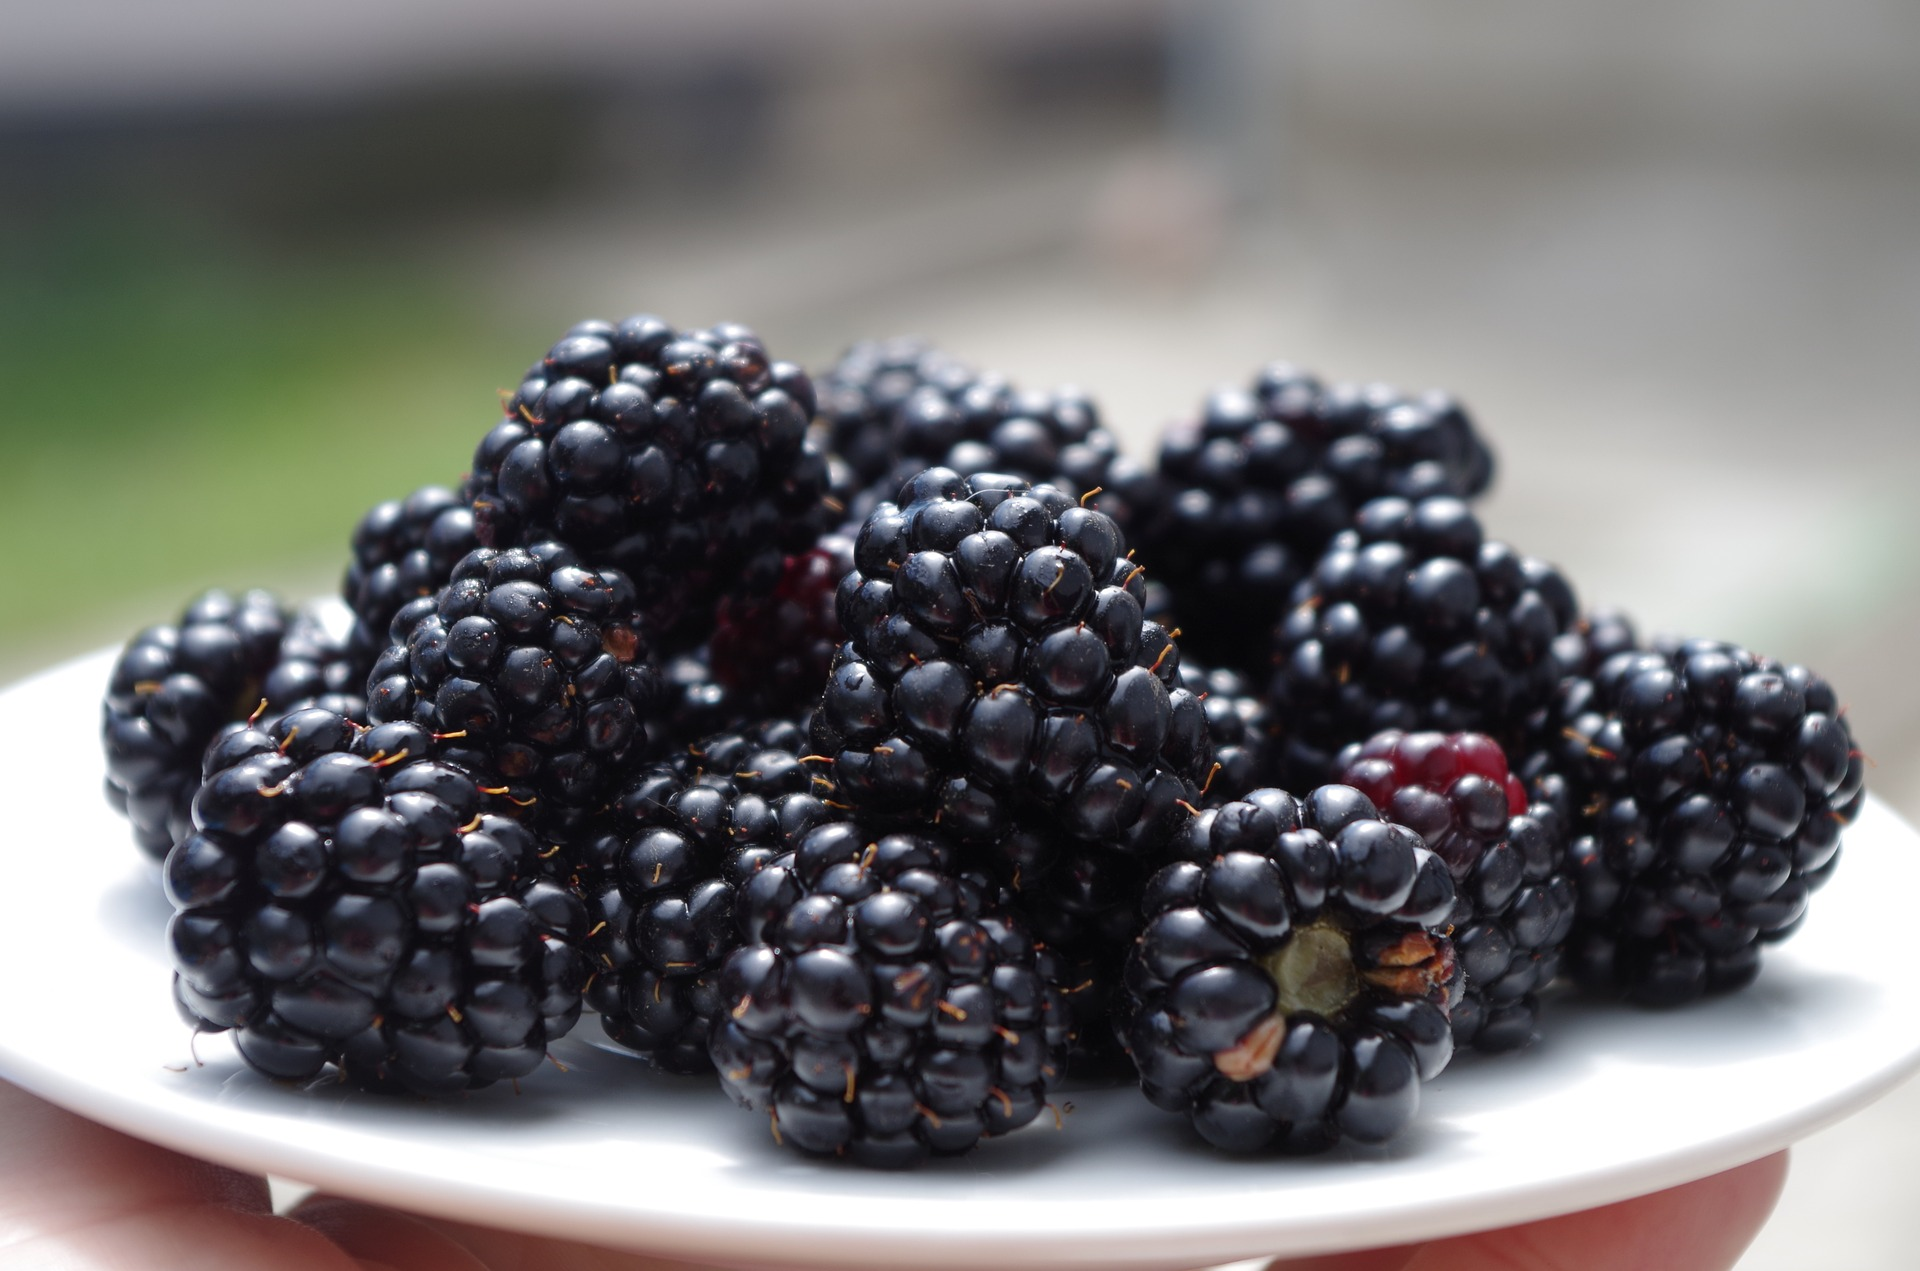 blackberries-1045728_1920.jpg